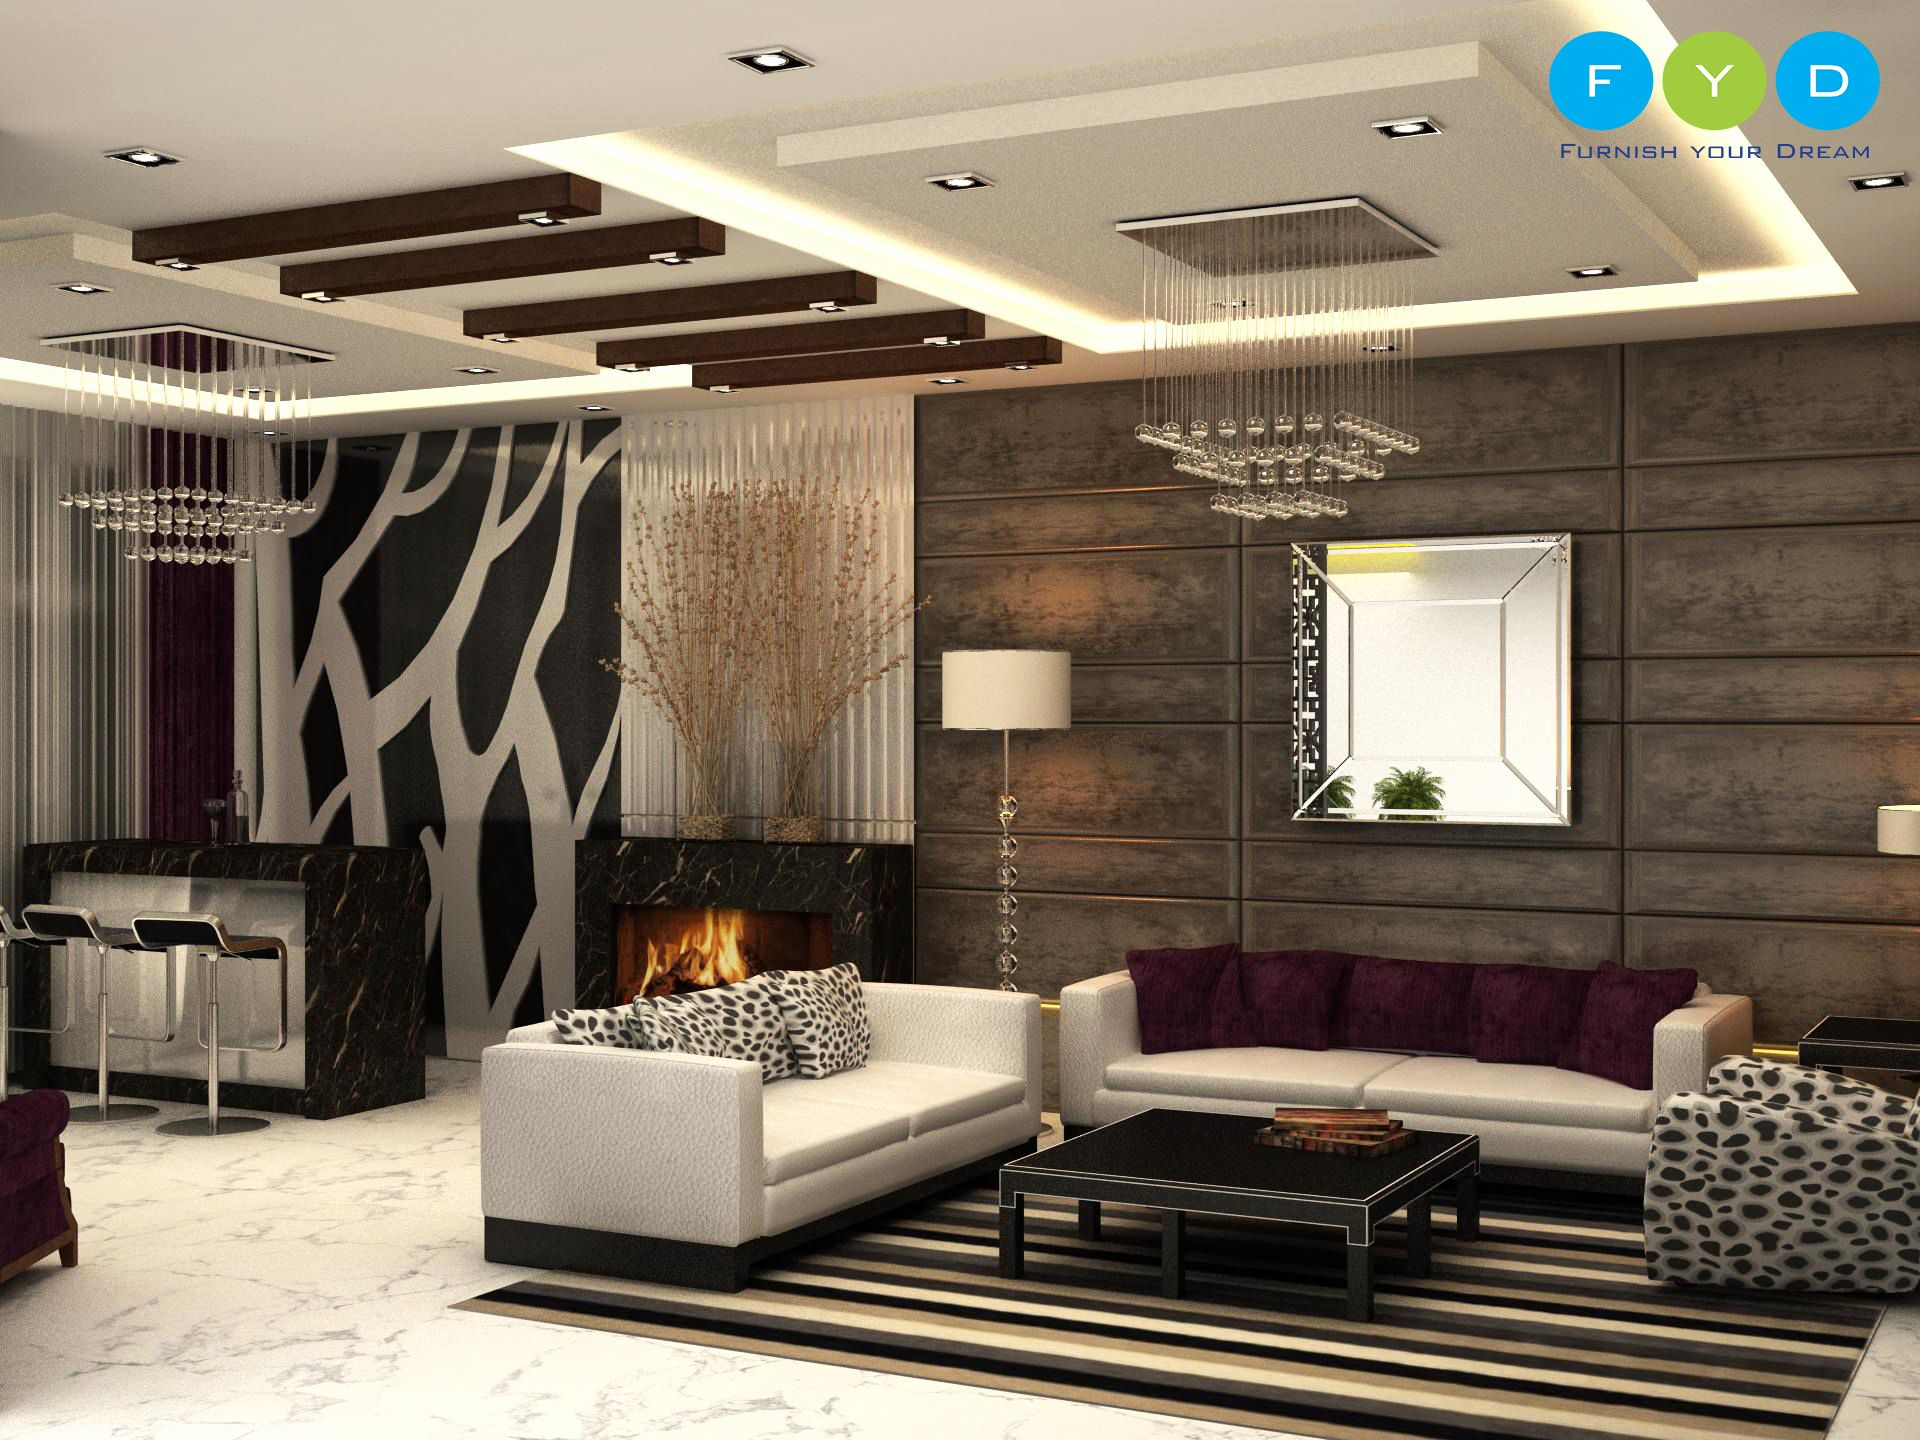 Pin By Pins Prajapati On For Beautiful Home Modern Bedroom